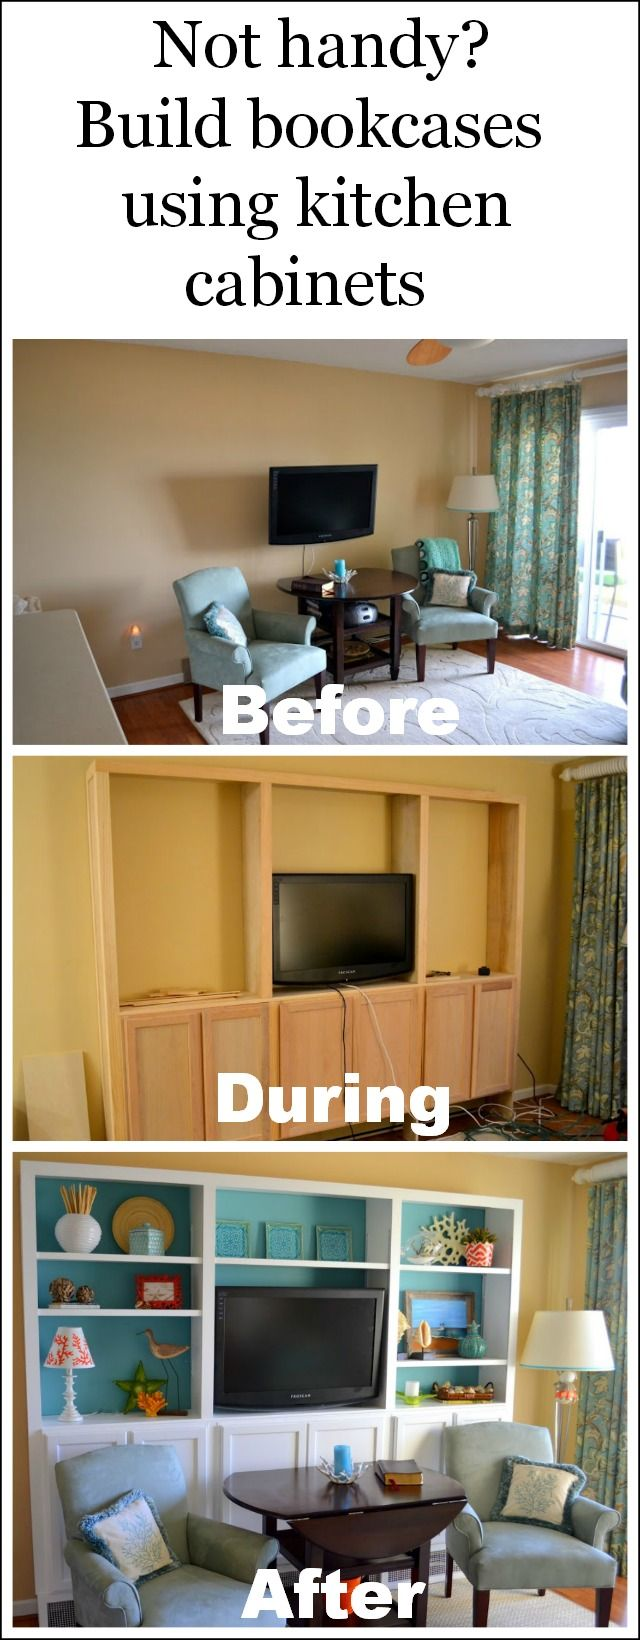 Kitchen Cabinets Turned Into A Bookcase Worthing Court Home Decor Home Remodeling Home